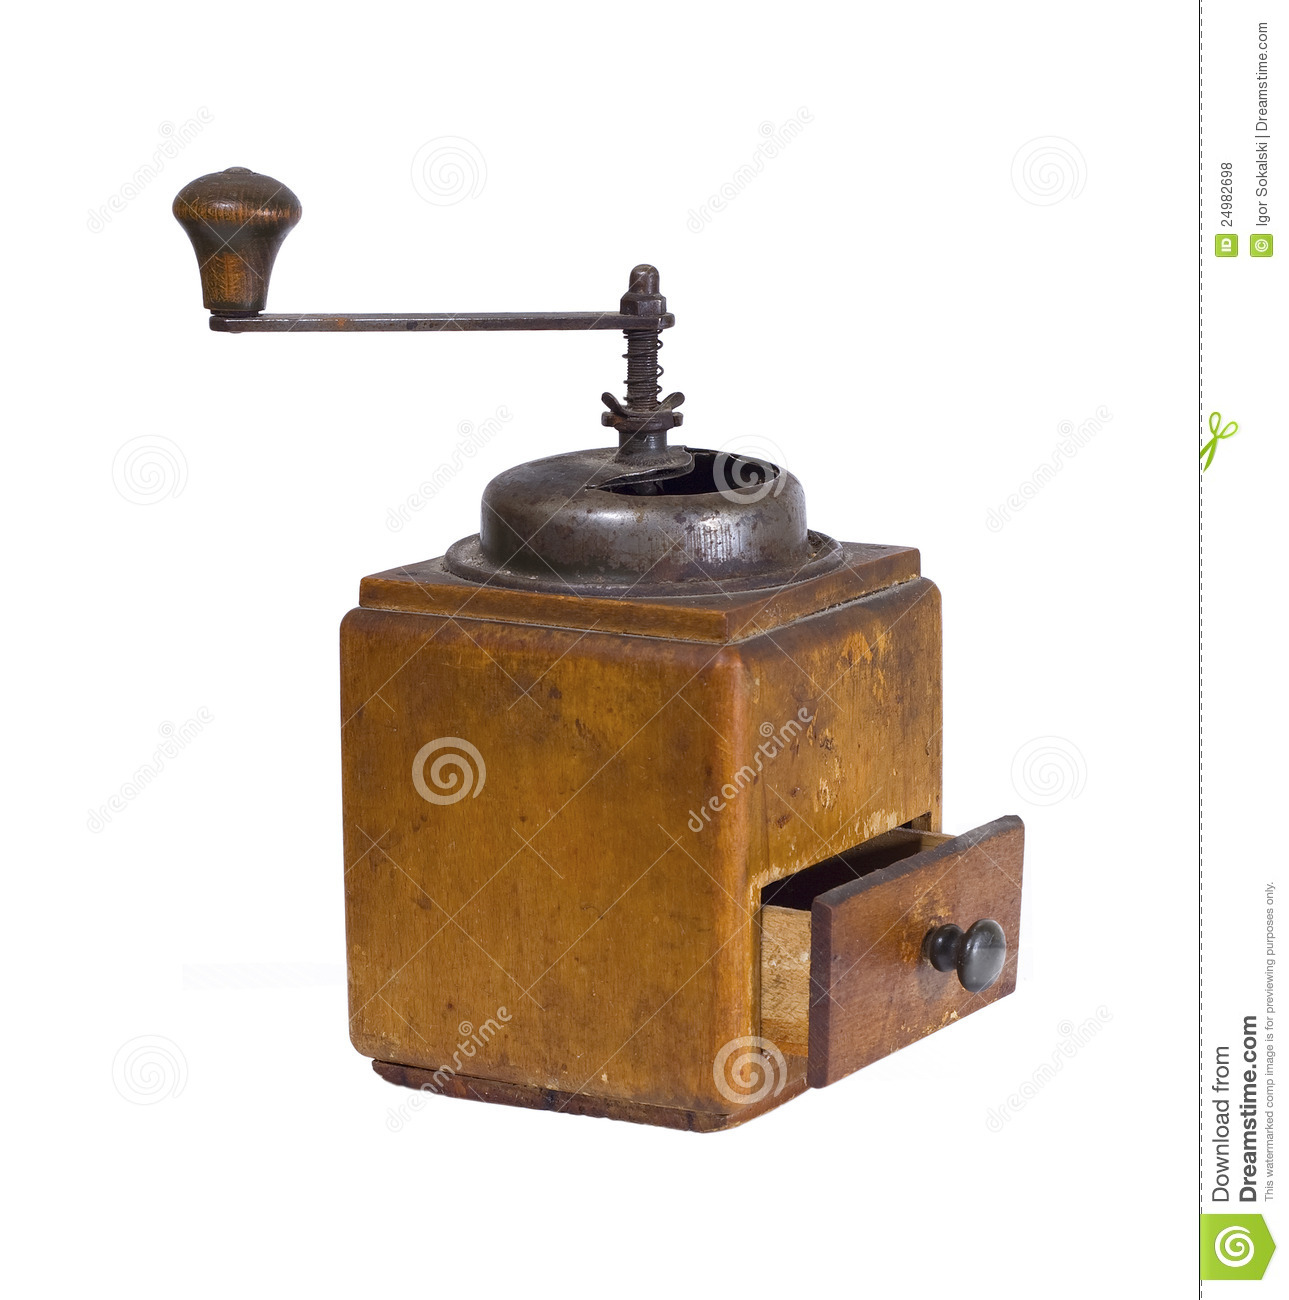 Vintage Coffee Grinder Royalty Free Stock Photo.